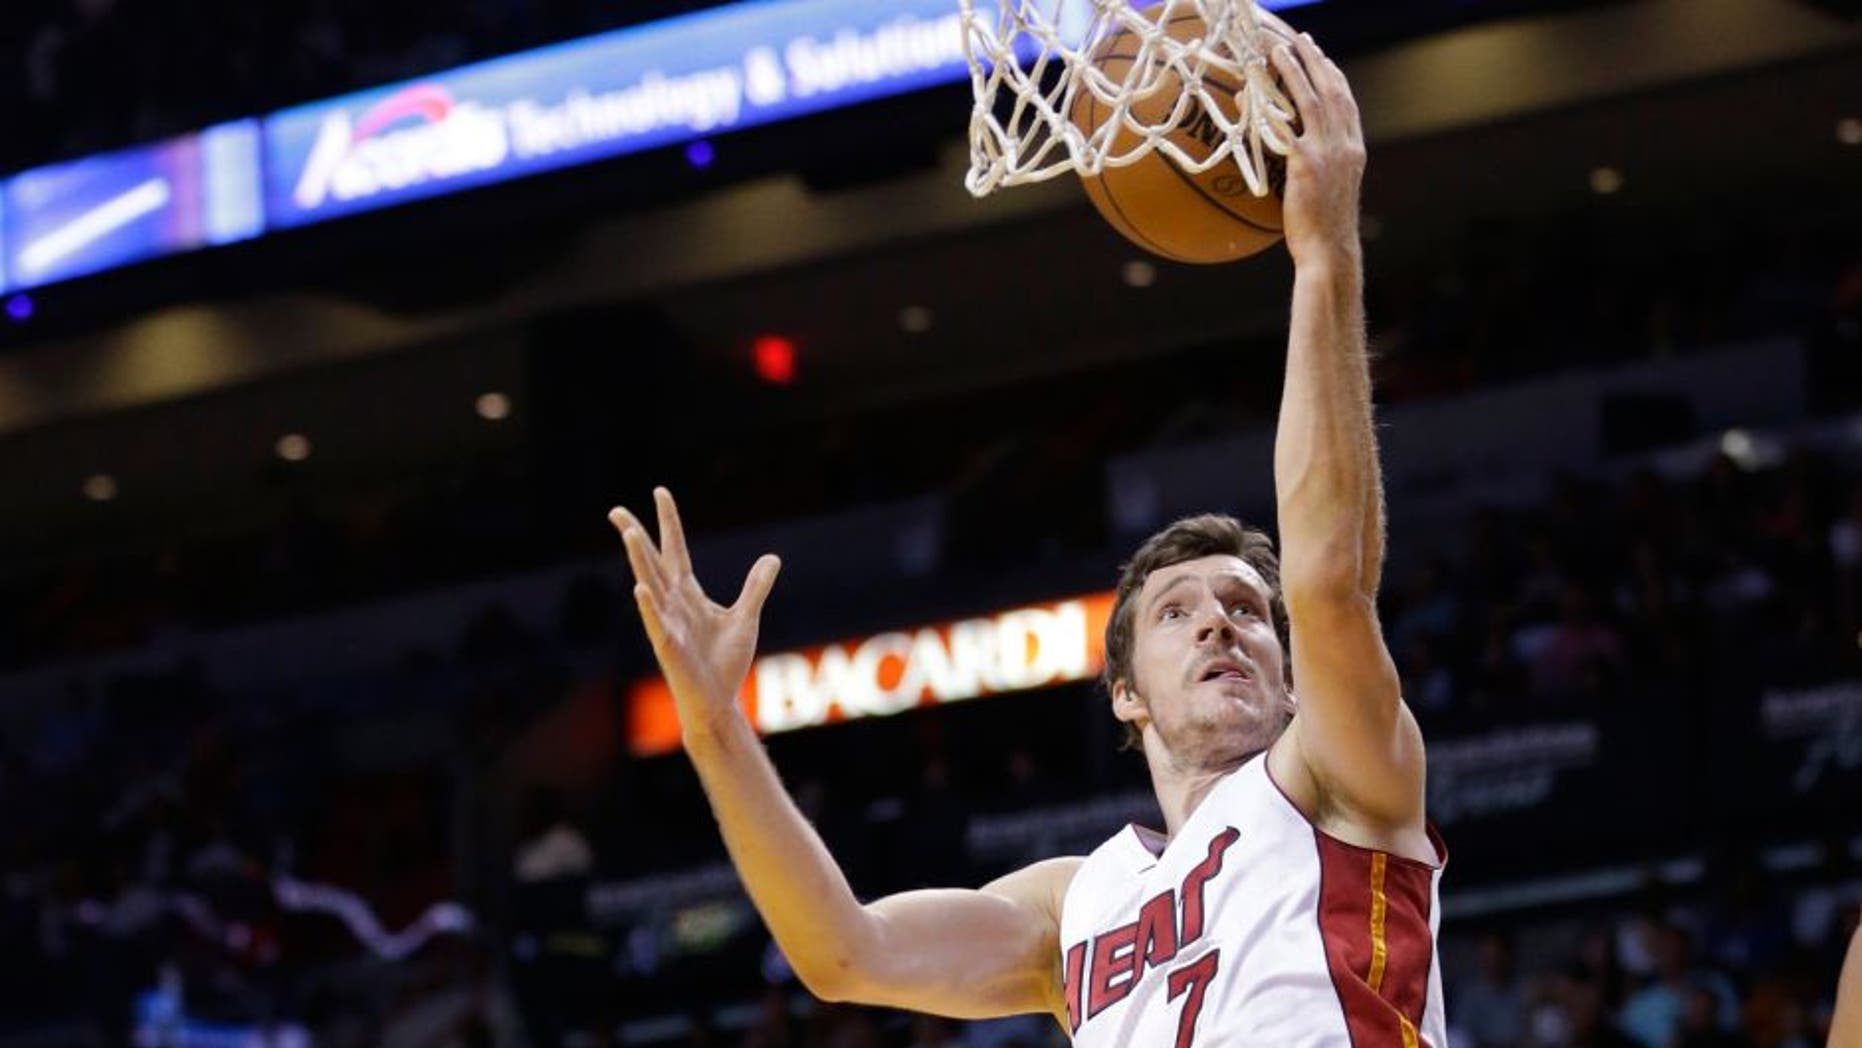 Miami Heat guard Goran Dragic (7) of Slovenia, goes up for a shot during the first half of an NBA basketball game against the Toronto Raptors, Saturday, April 11, 2015, in Miami. (AP Photo/Wilfredo Lee)